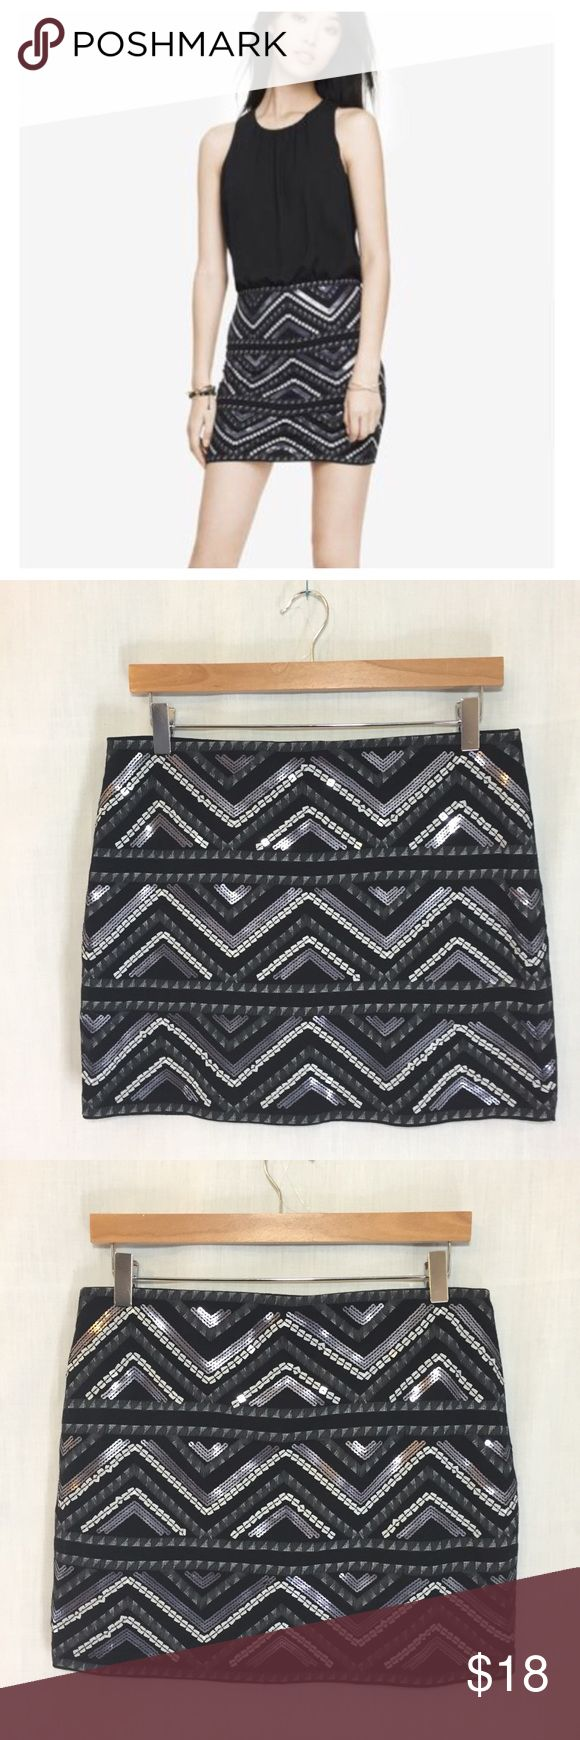 Express Sequin Mini Skirt Black Silver Geometric M Express Sequin Mini Skirt Black Silver Geometric EUC  Sz M Lined Elastic waist 60/40 Cotton/modal Excellent preloved condition  Measured flat 15.5 inch waist  18.5 inch hips  15 inch length Express Skirts Mini